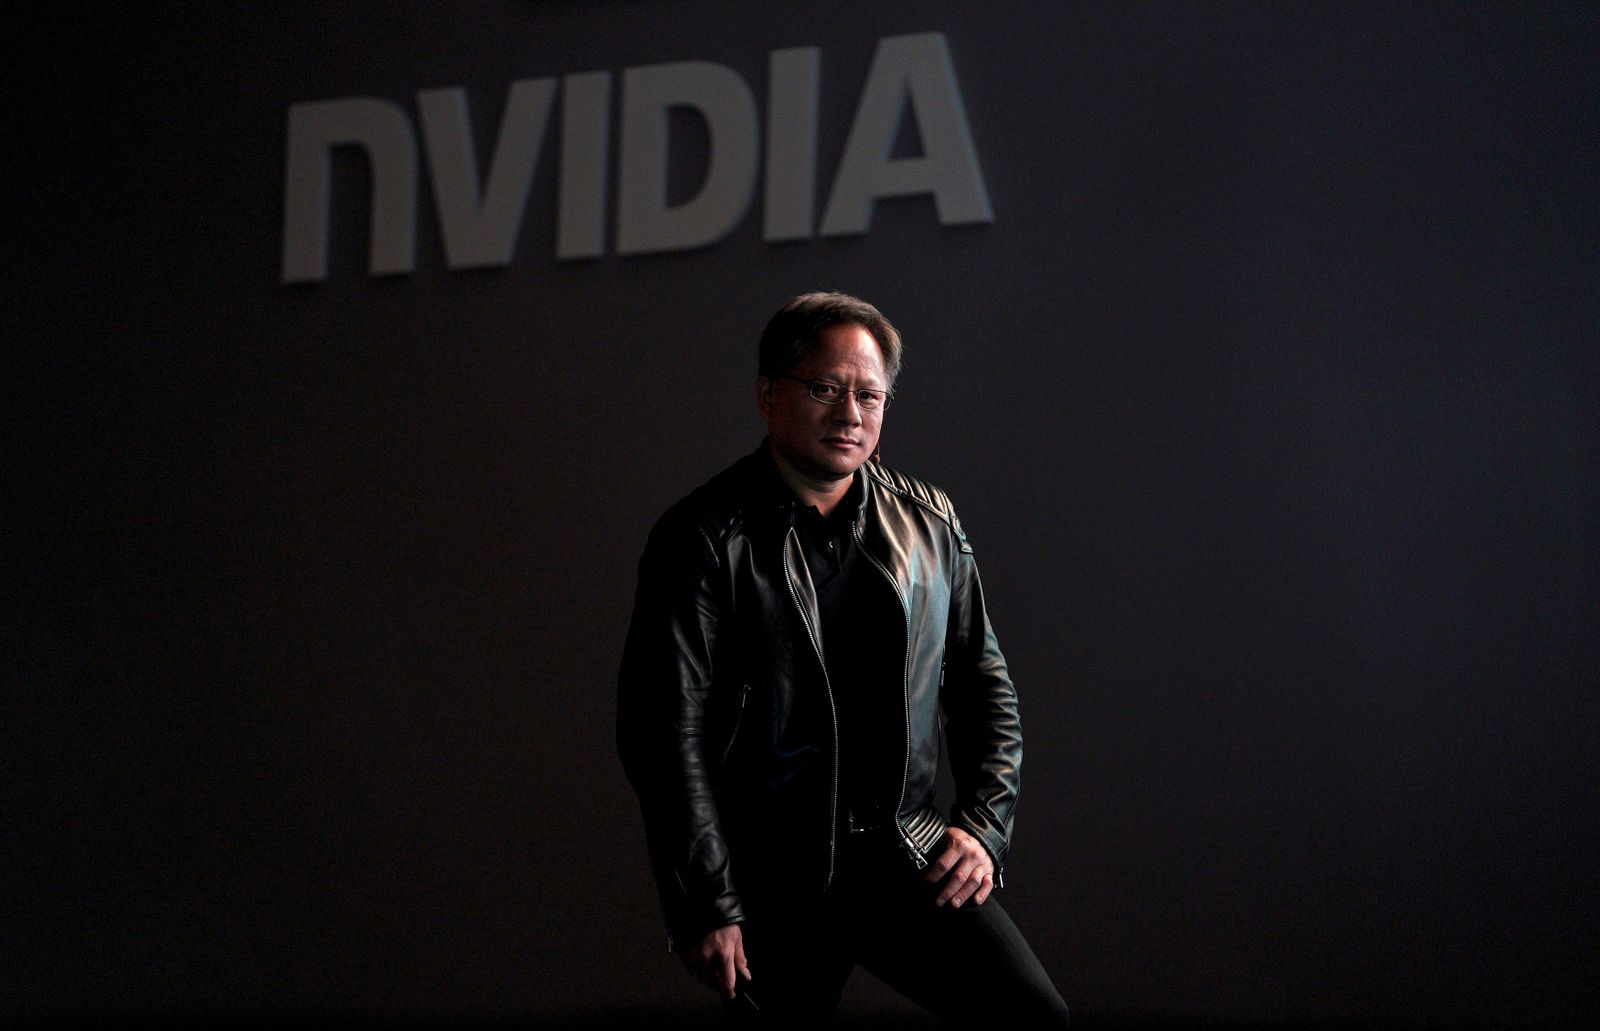 FILE PHOTO: Jensen Huang, CEO of Nvidia, pauses at his keynote address at CES in Las Vegas